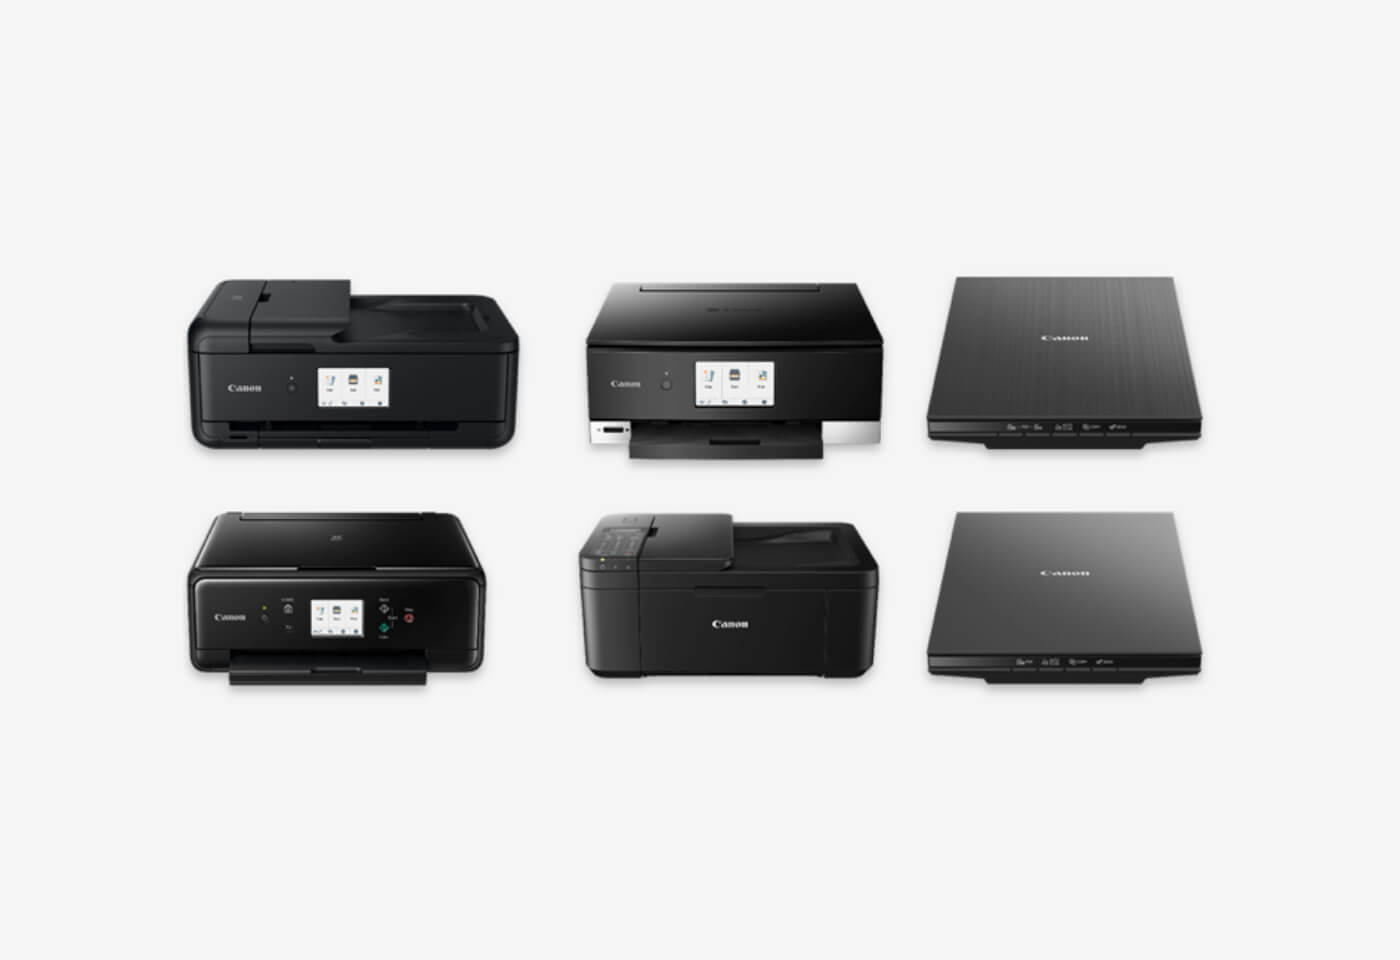 Canon's new PIXMA printer and CanoScan range